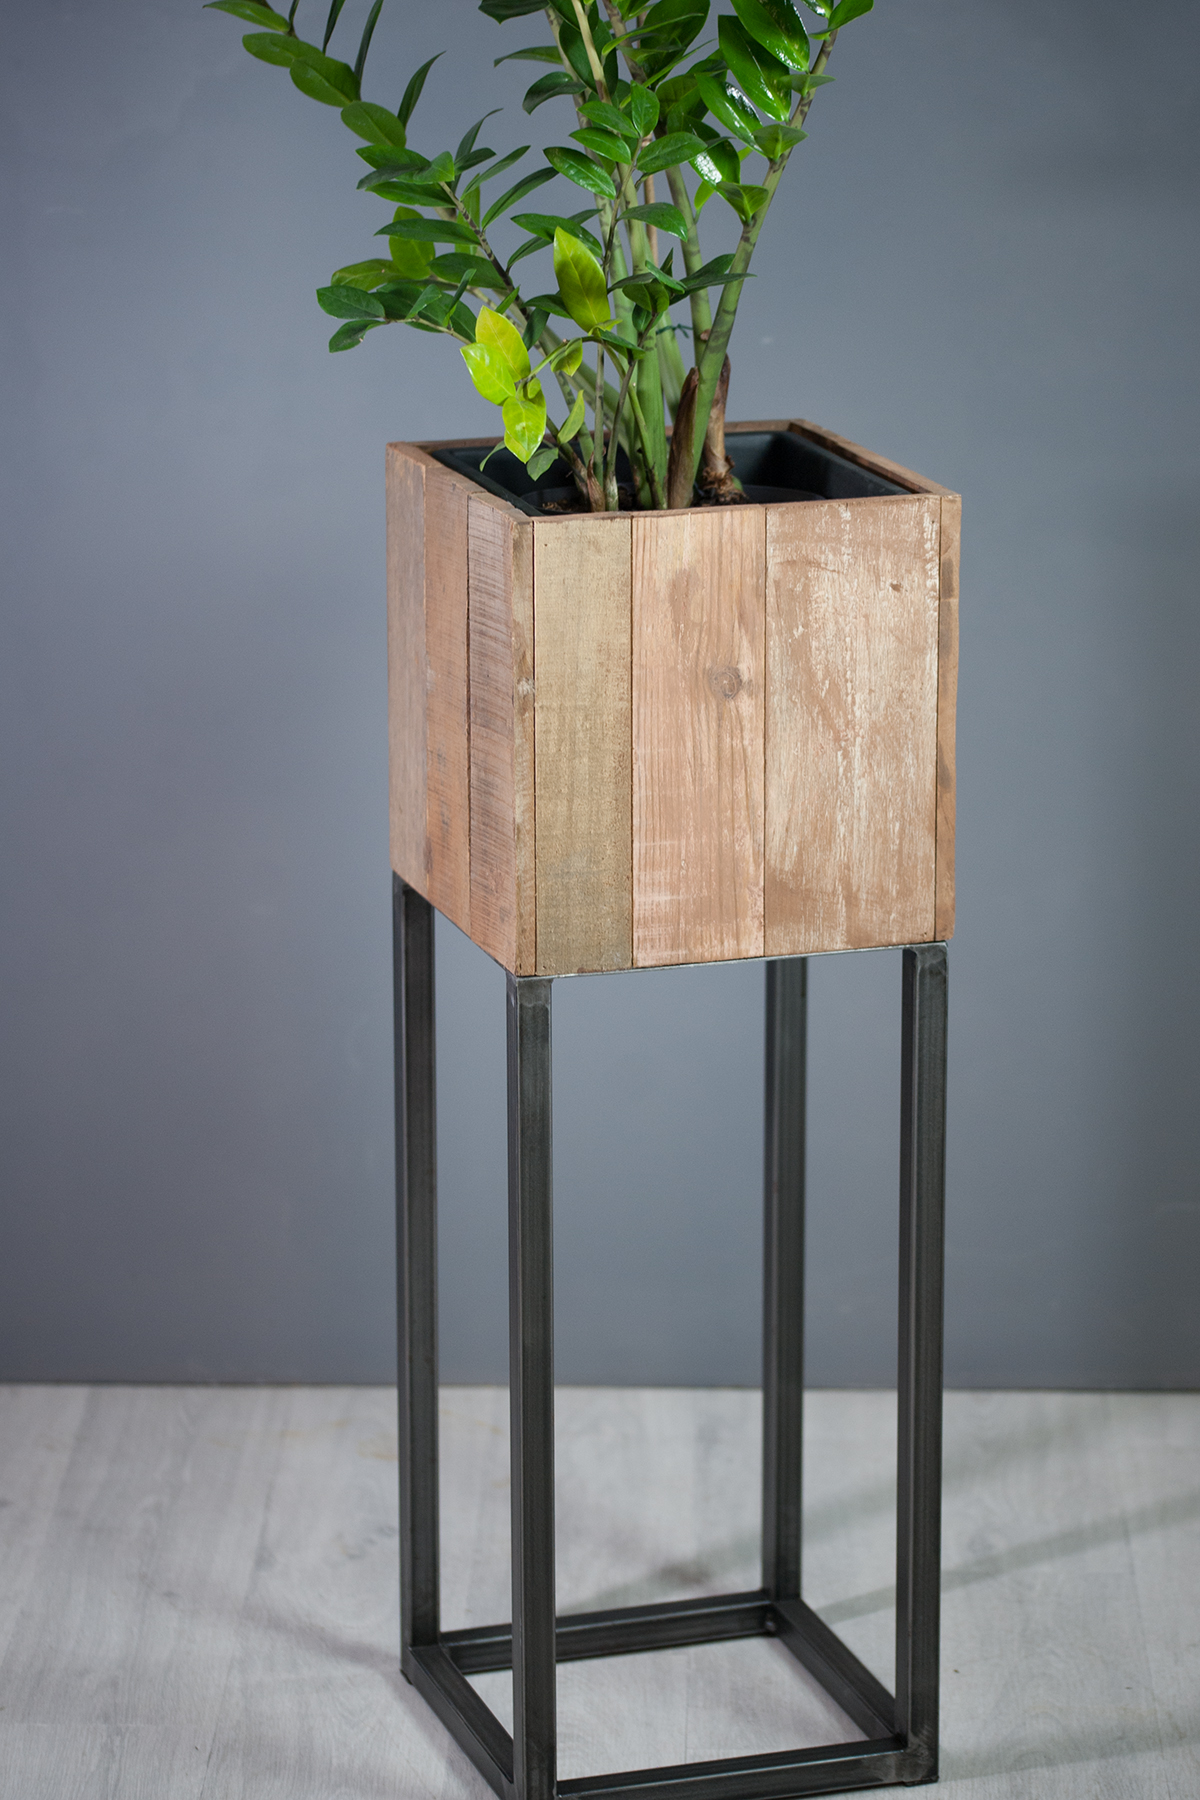 vases design cache pot carr 30 cm en m tal et bois exotique. Black Bedroom Furniture Sets. Home Design Ideas